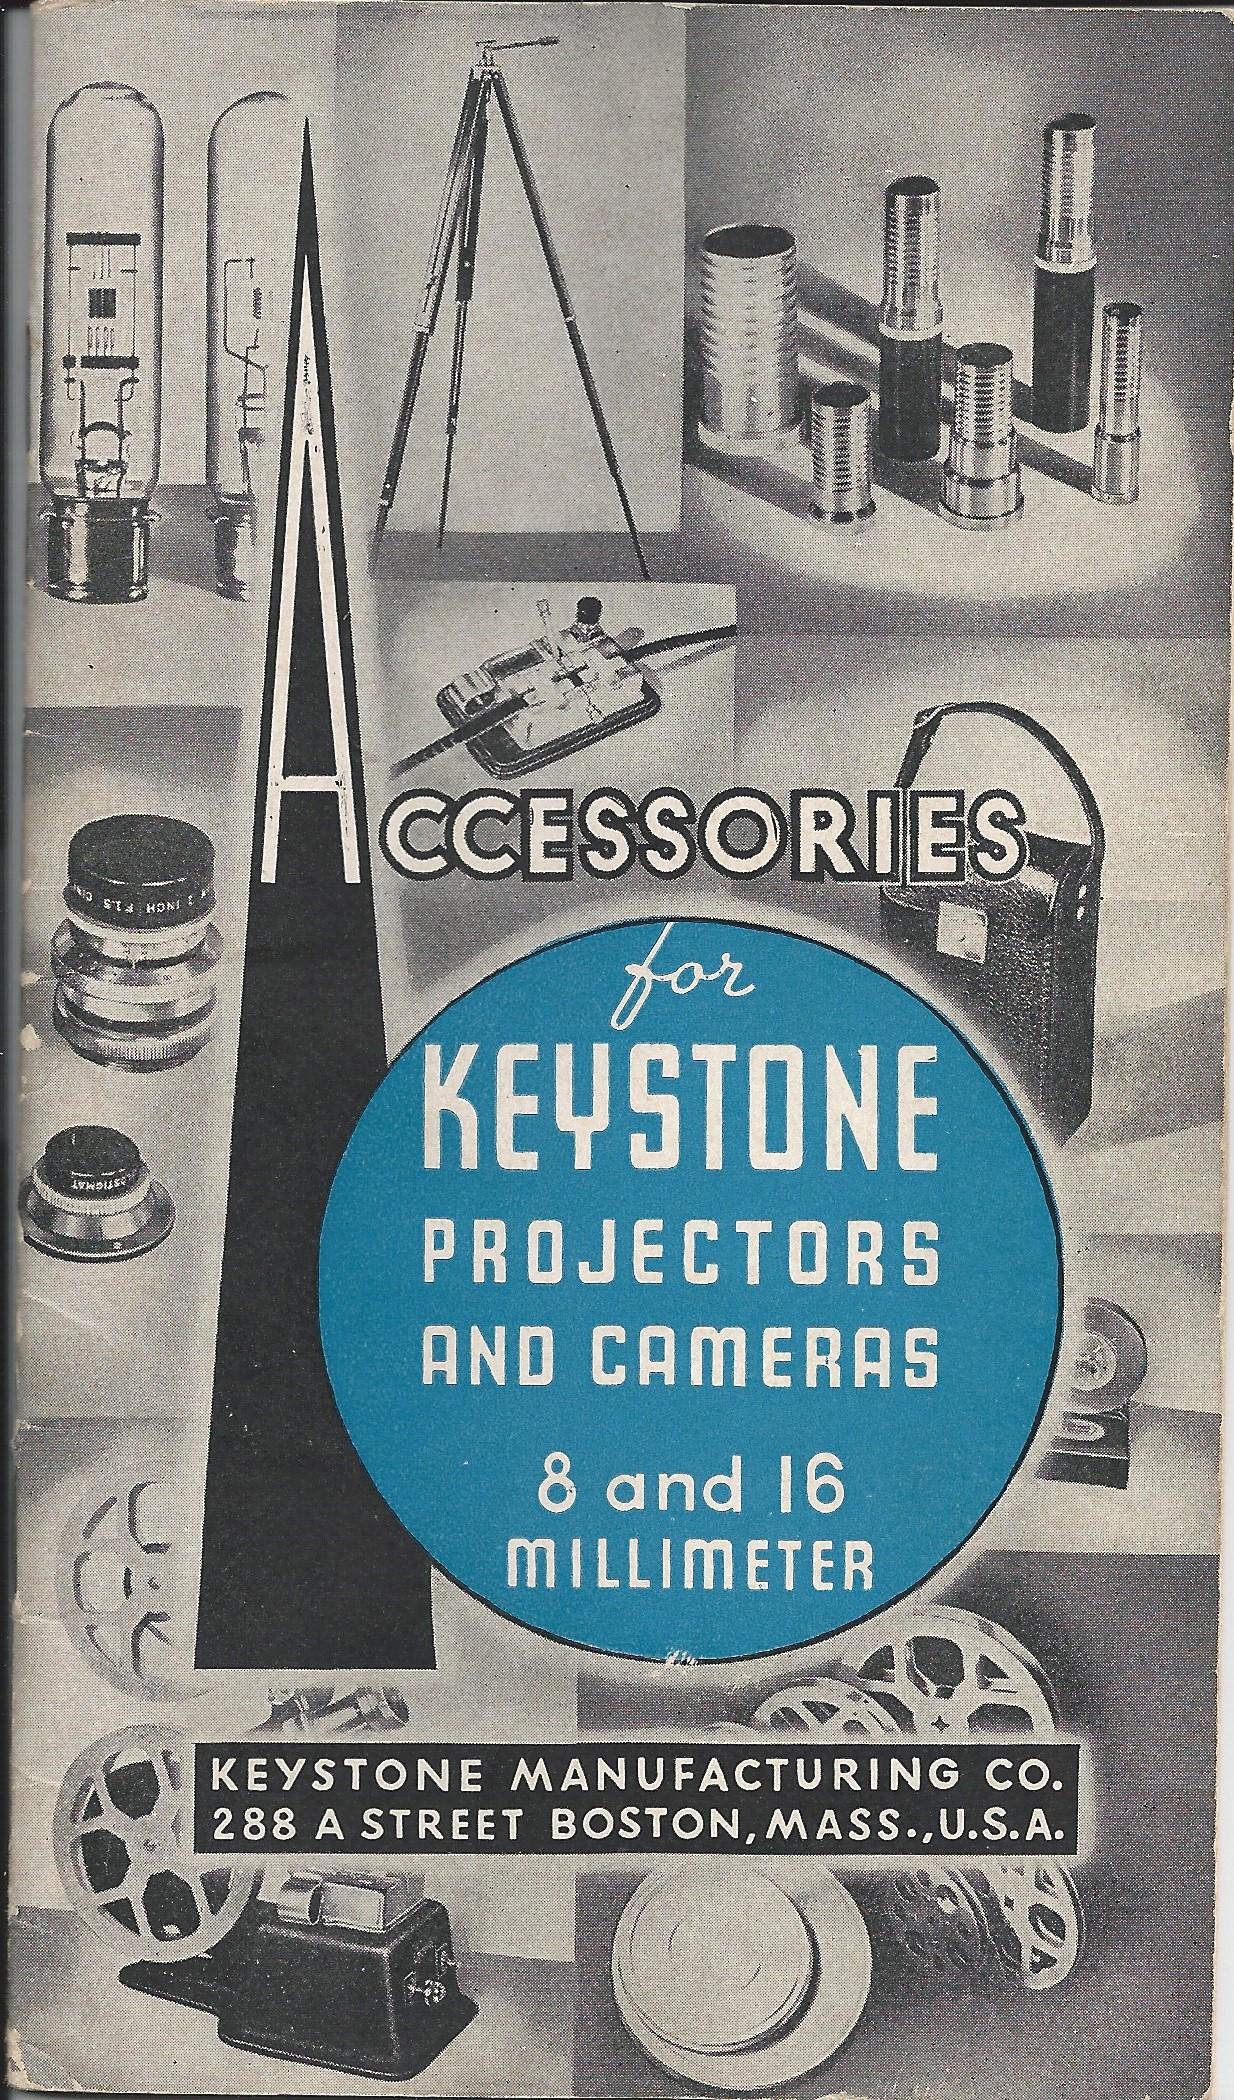 Catalogs Archives - Page 4 of 8 - Collecting Keystone